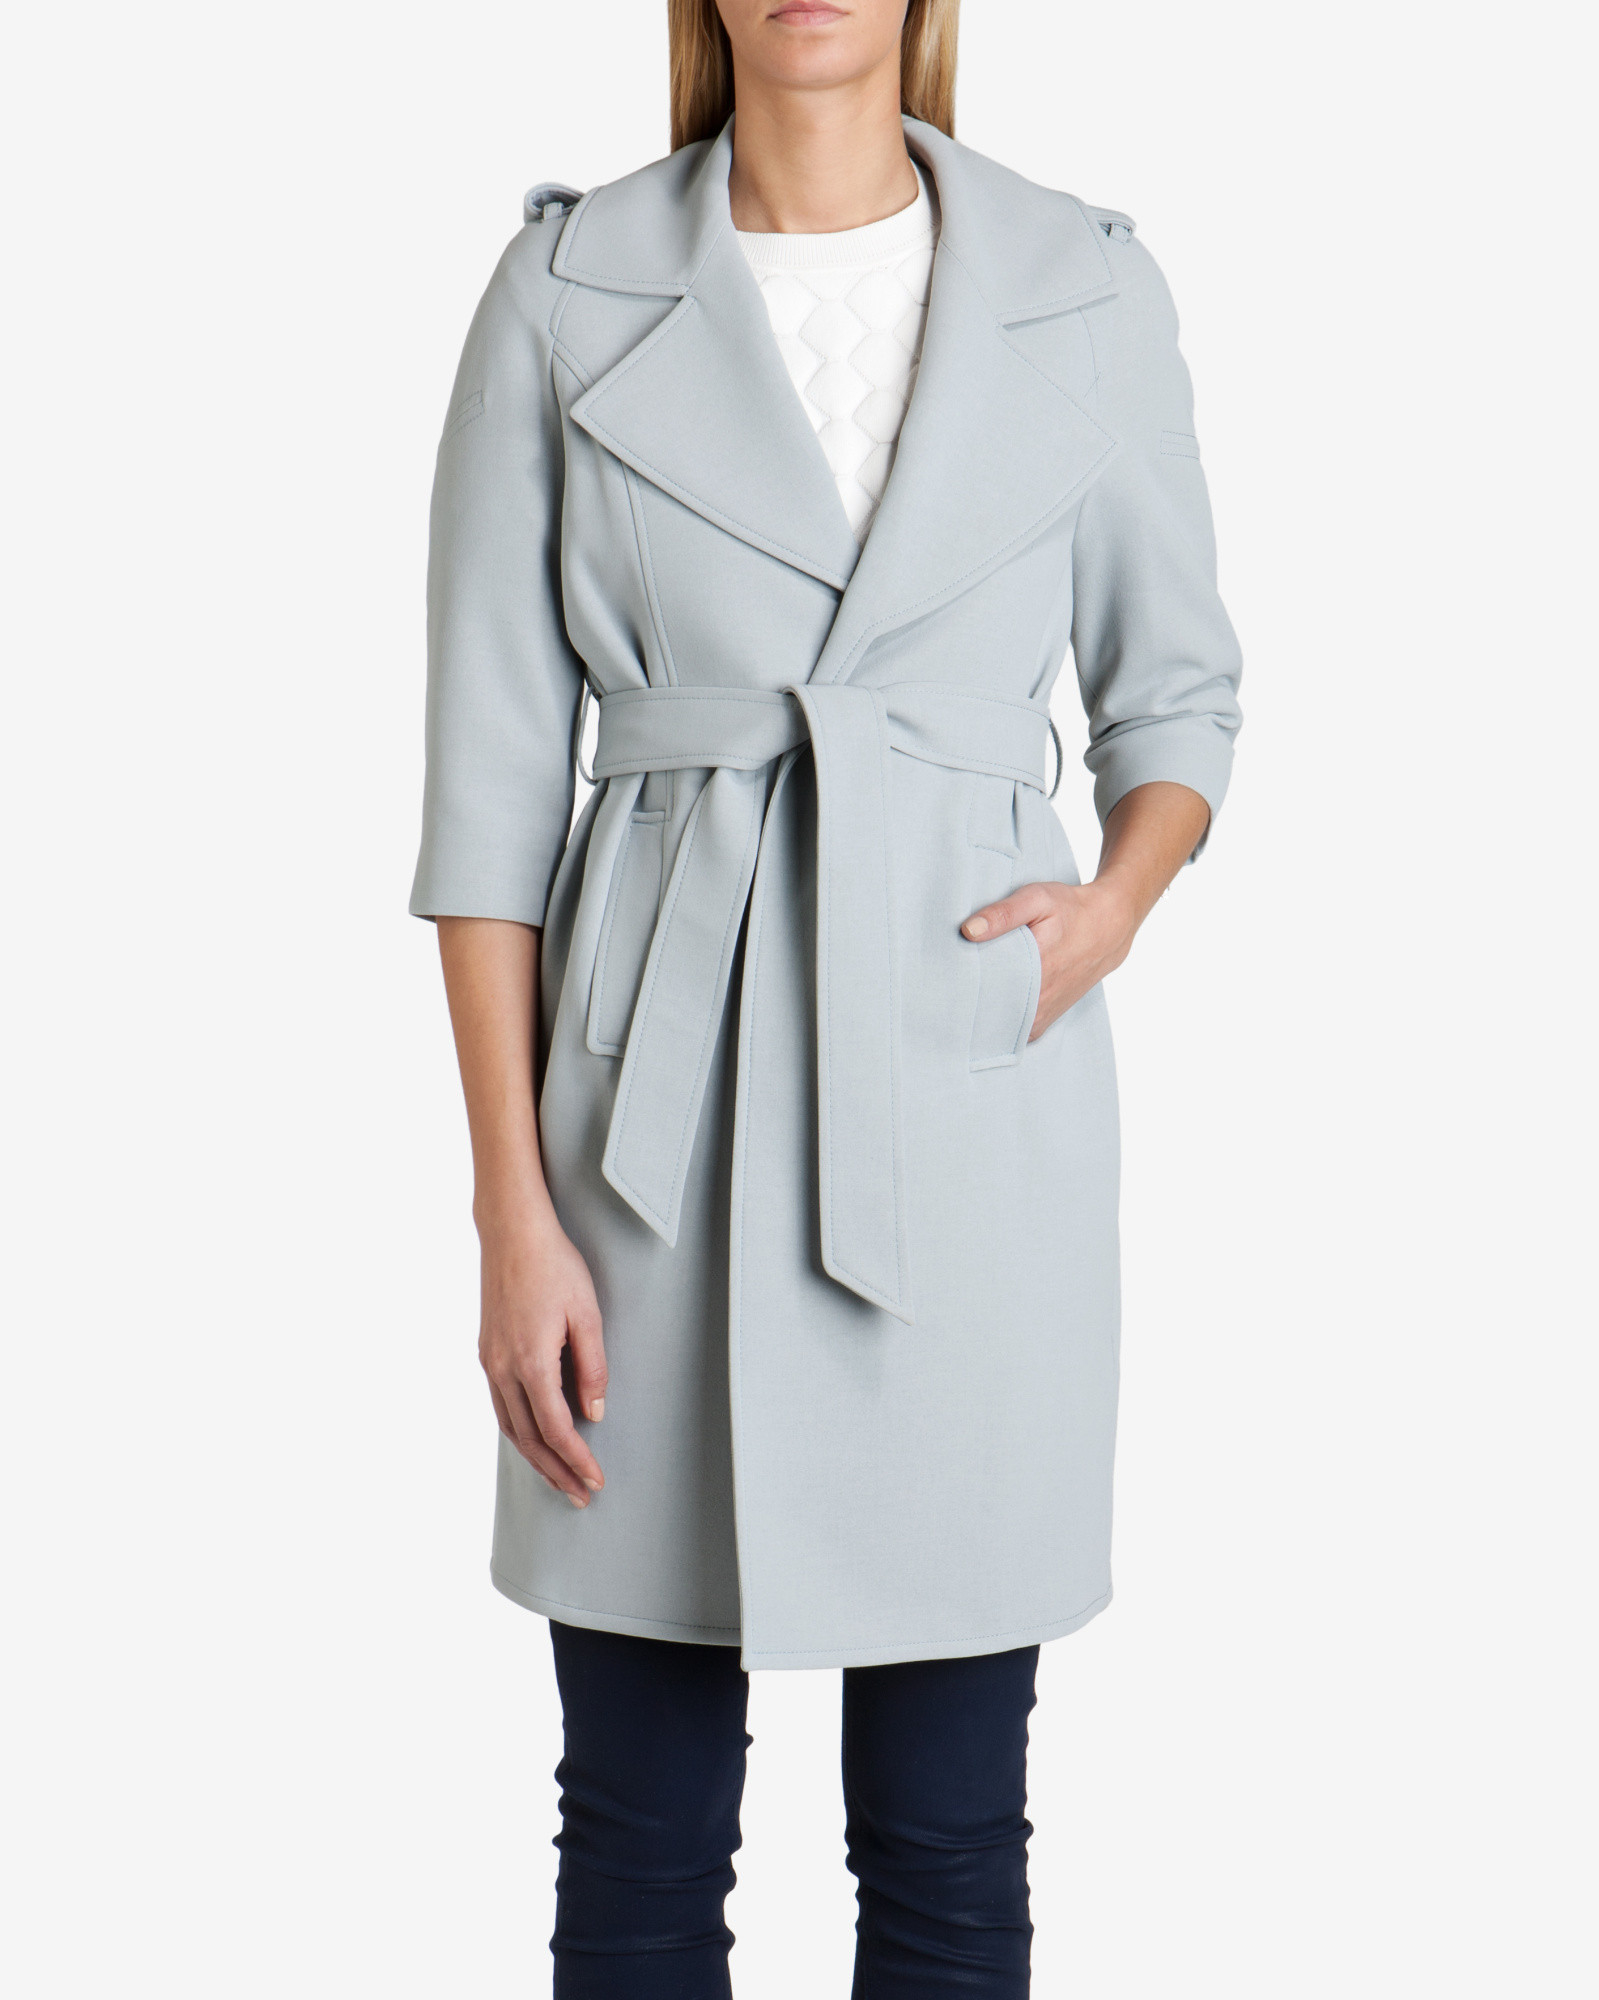 63eb202dea6c2 Ted Baker Deconstructed Trench Coat in Blue - Lyst